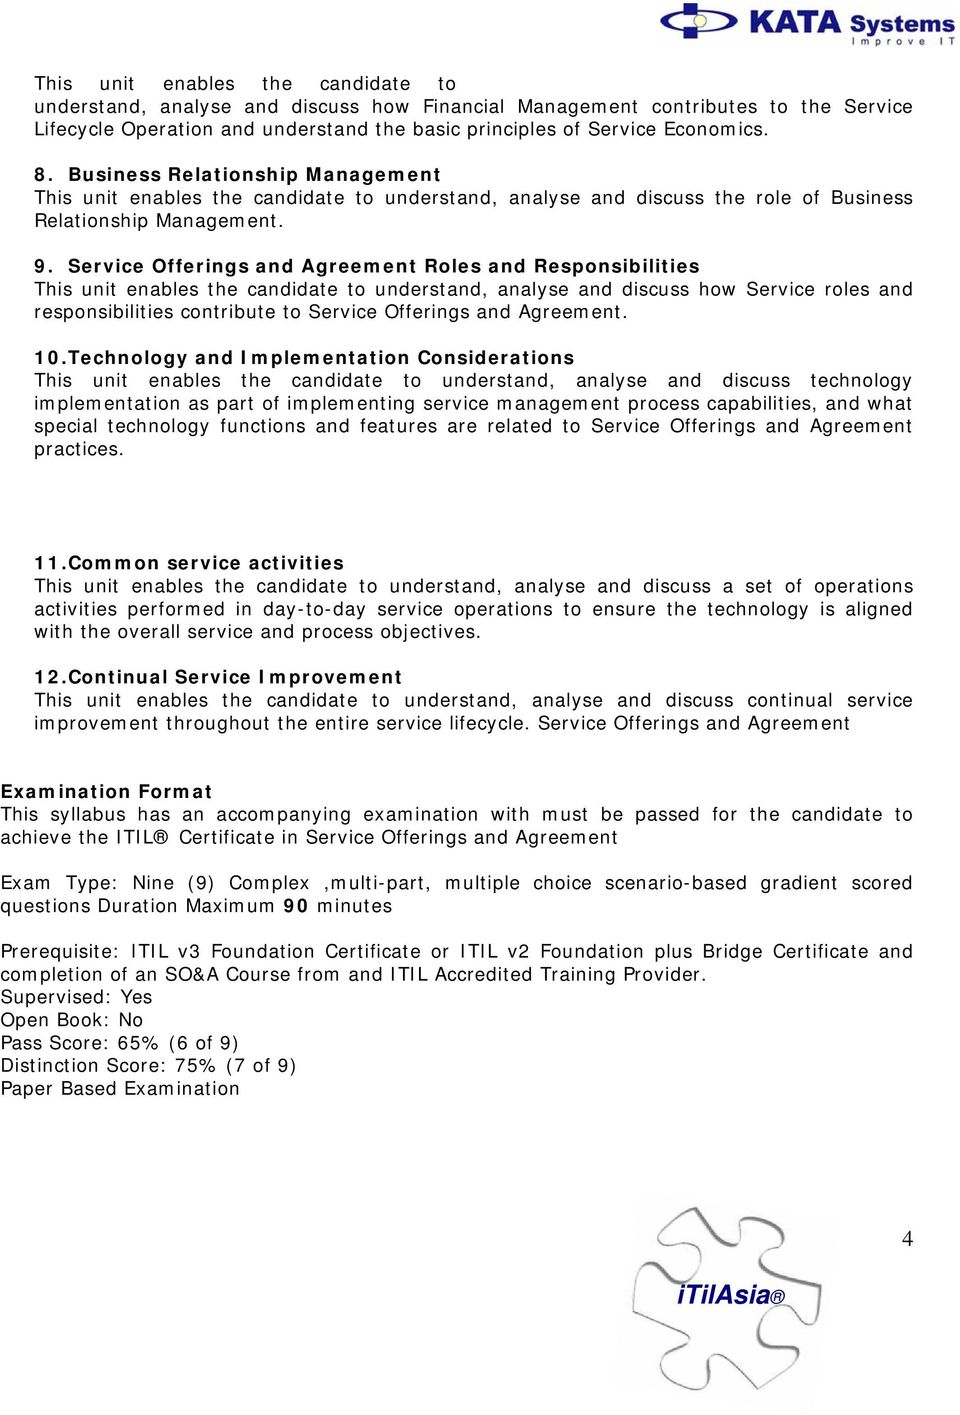 Service Offerings and Agreement Roles and Responsibilities This unit enables the candidate to understand, analyse and discuss how Service roles and responsibilities contribute to Service Offerings